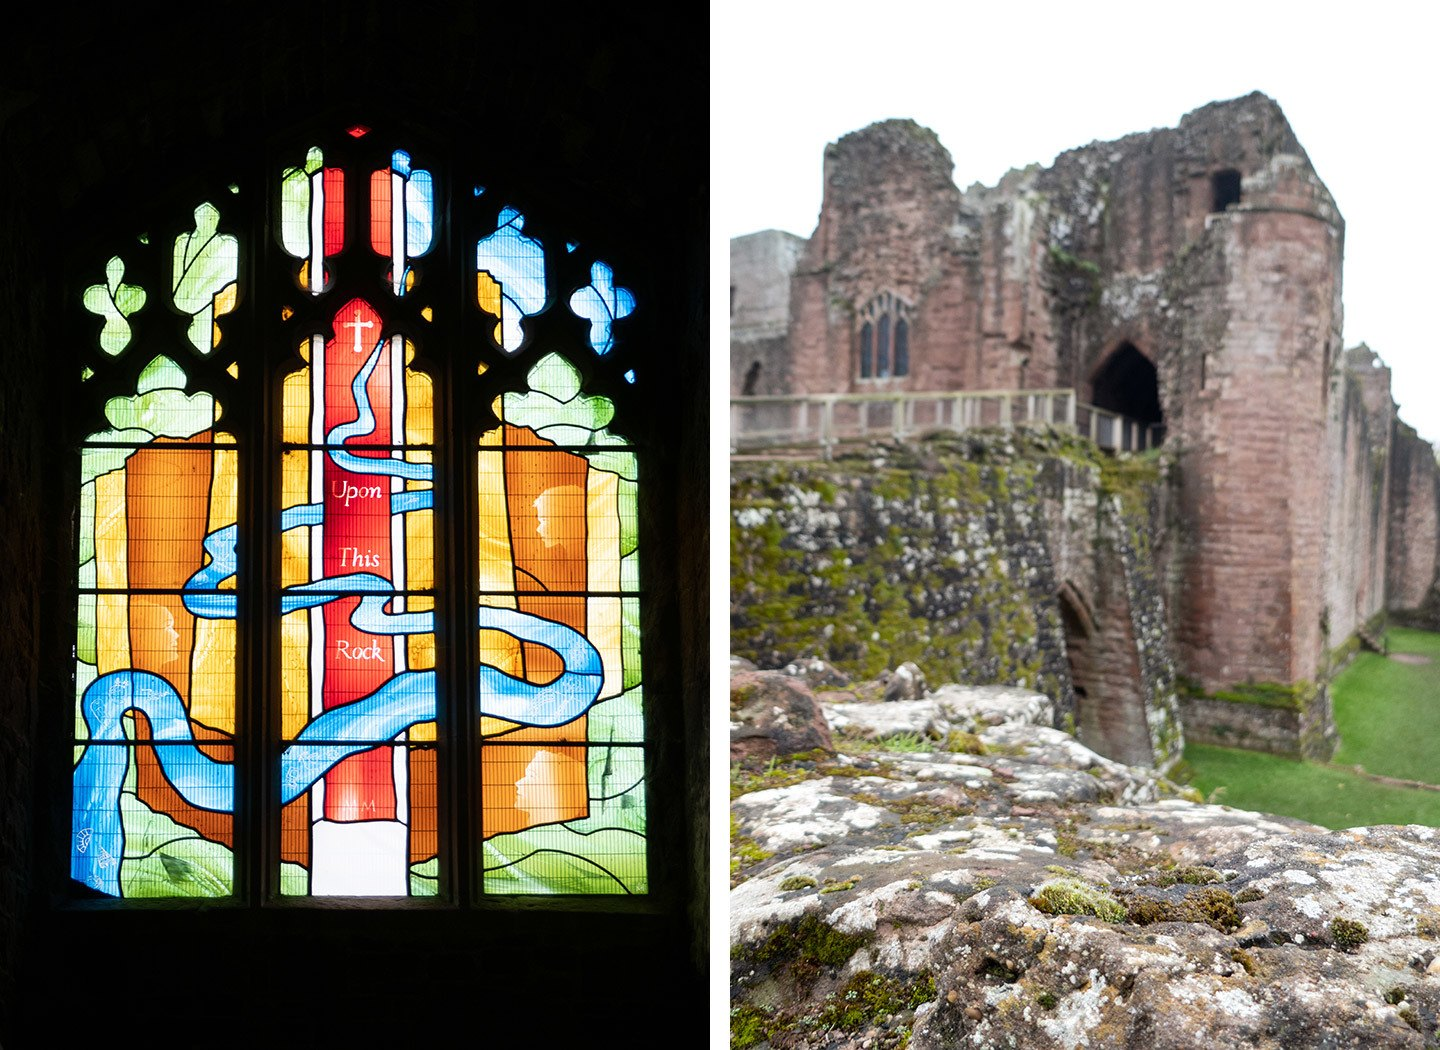 Goodrich Castle in Herefordshire – castle entrance and stained-glass window